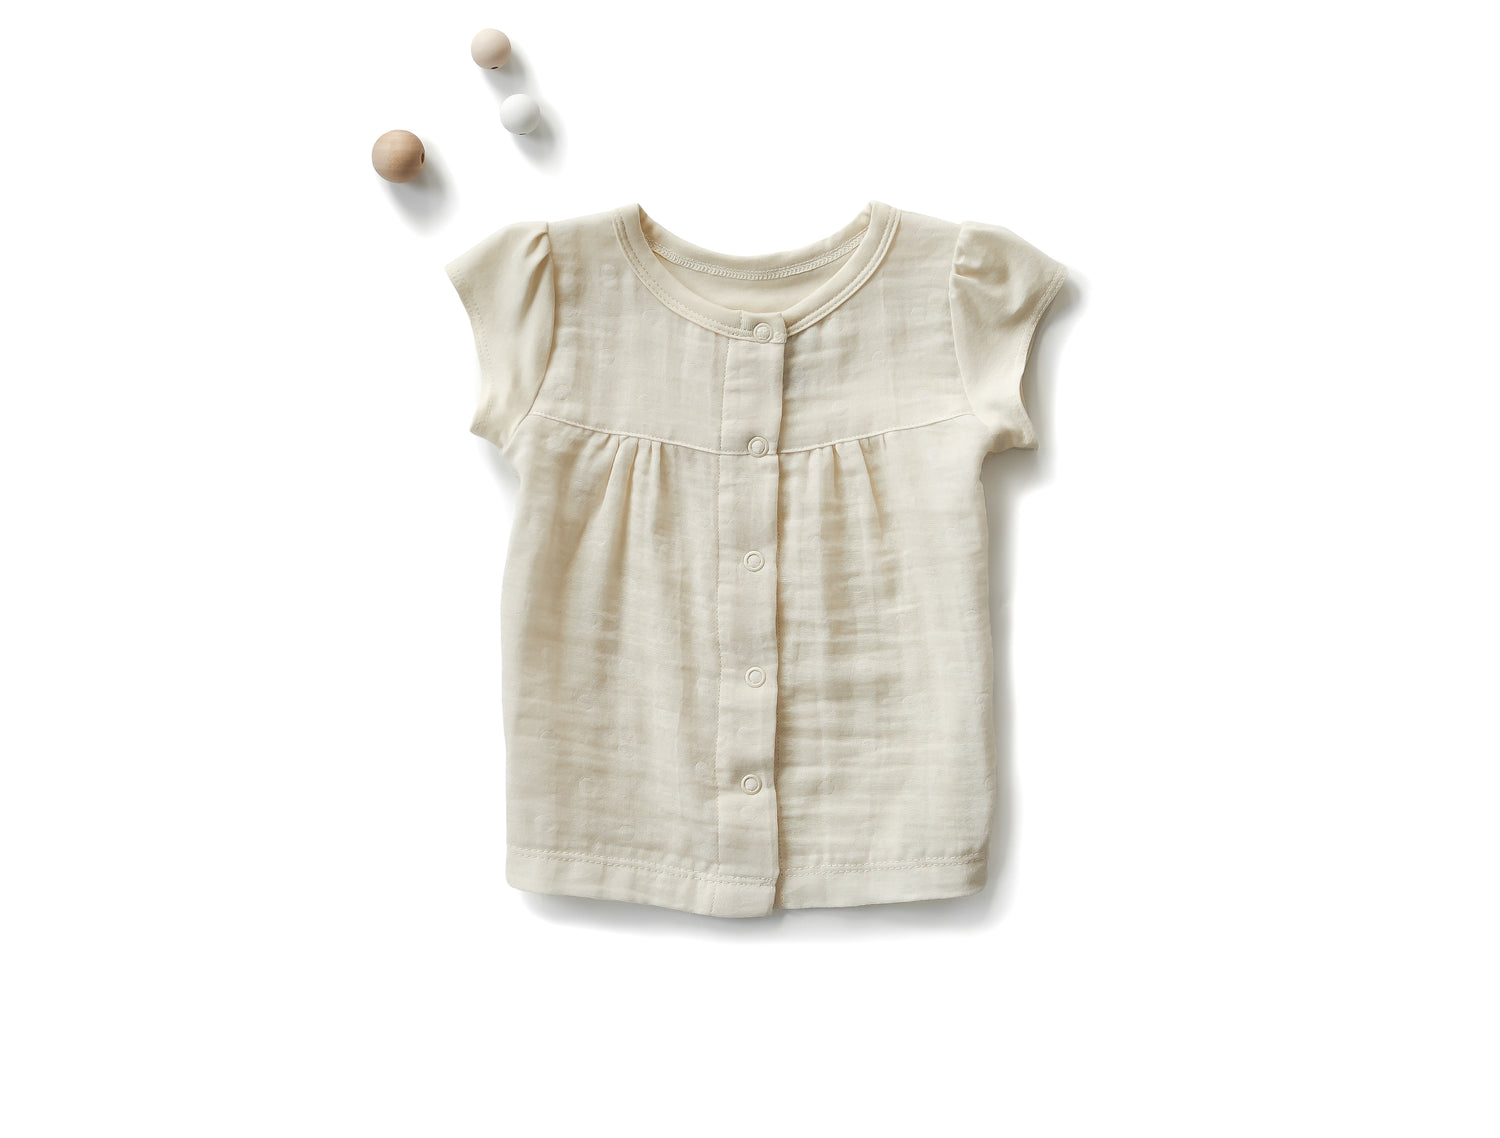 Organic Infant Girl's Short Sleeve Lounge / Pajama Shirt | Ivory